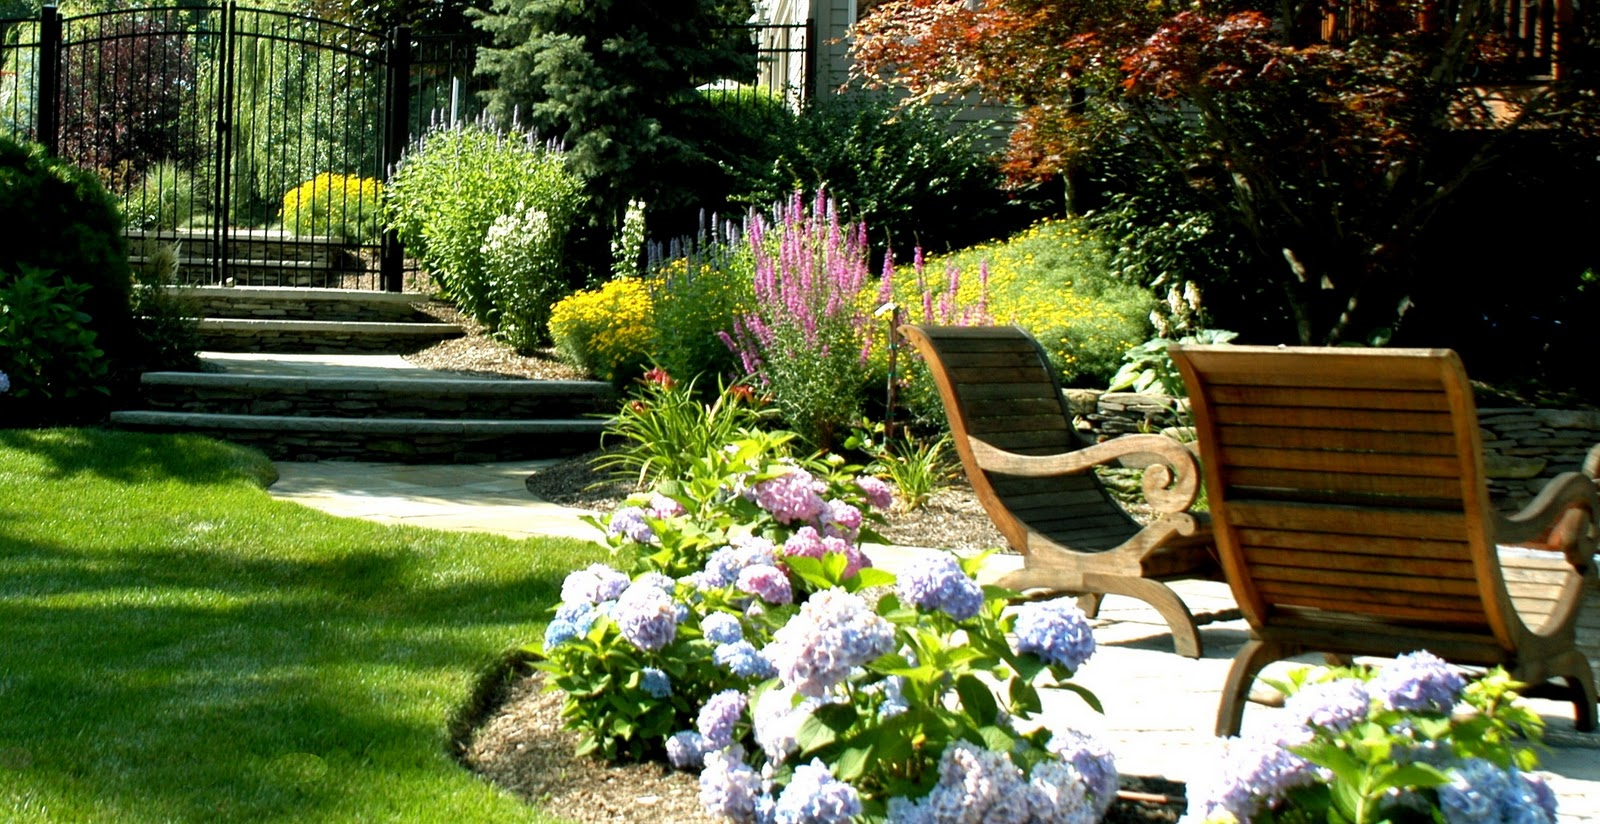 Hightechlandscapes new jersey landscape design for Garden design and landscaping